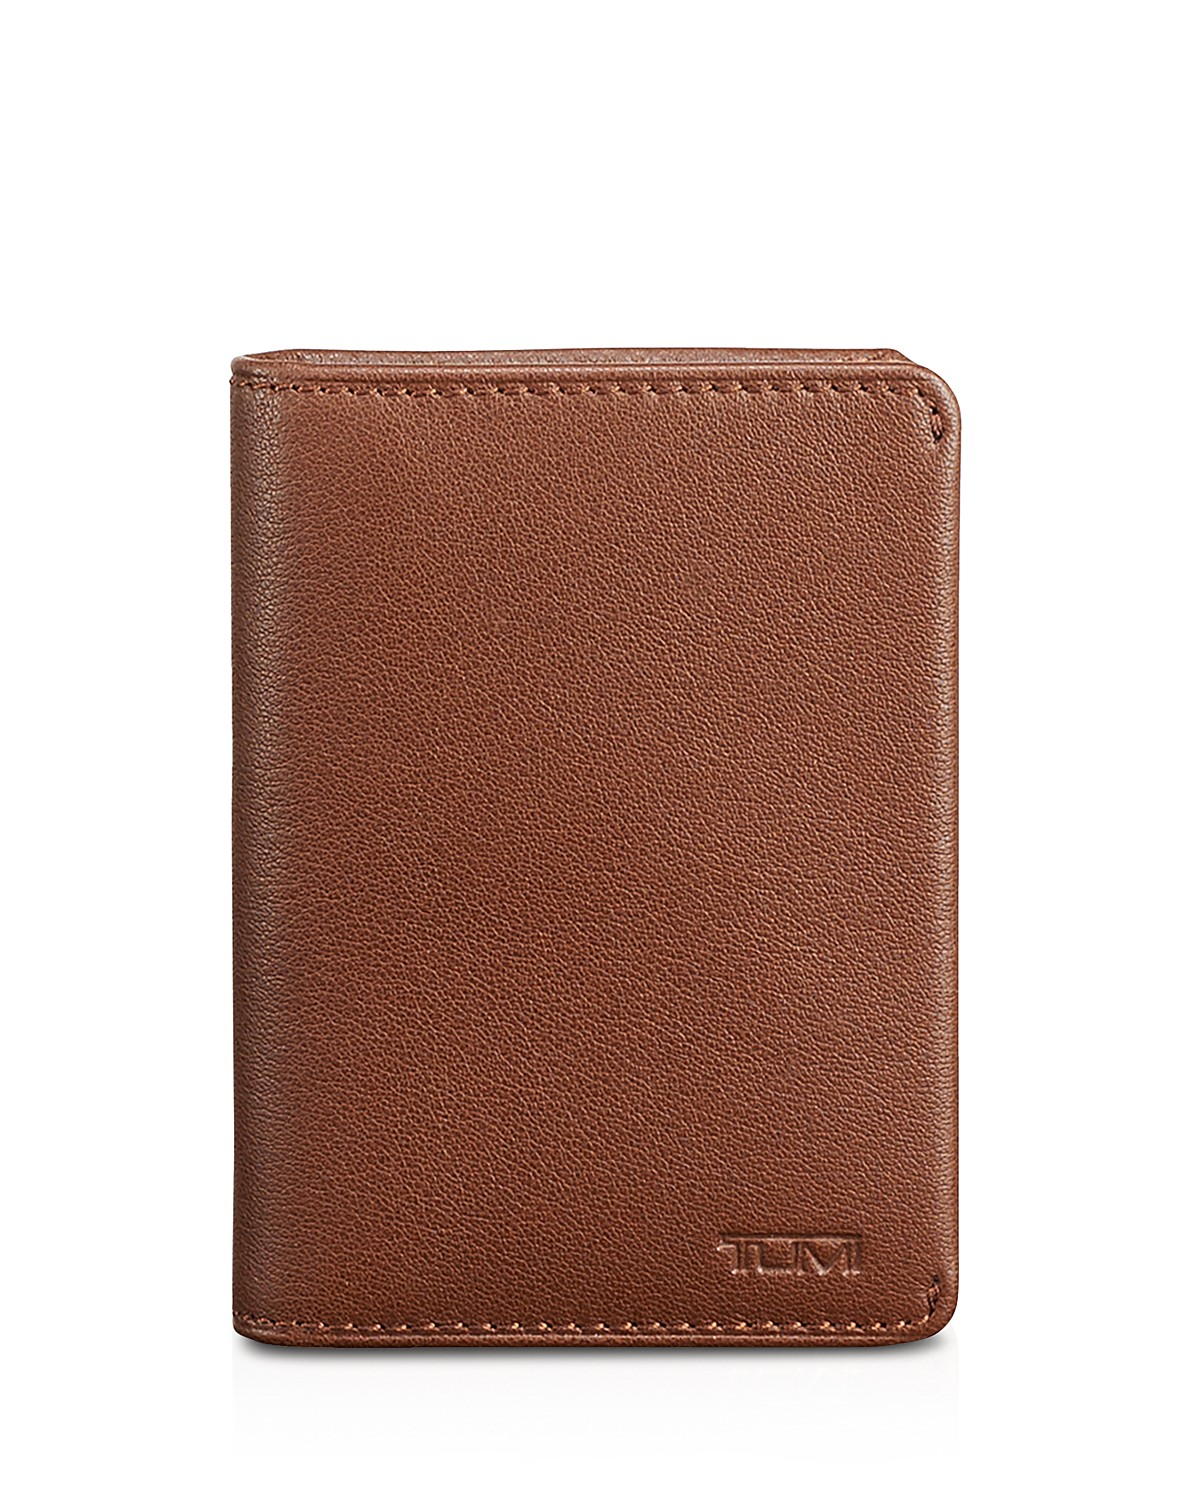 Tumi Chambers Gusseted Card Case | Bloomingdale\'s